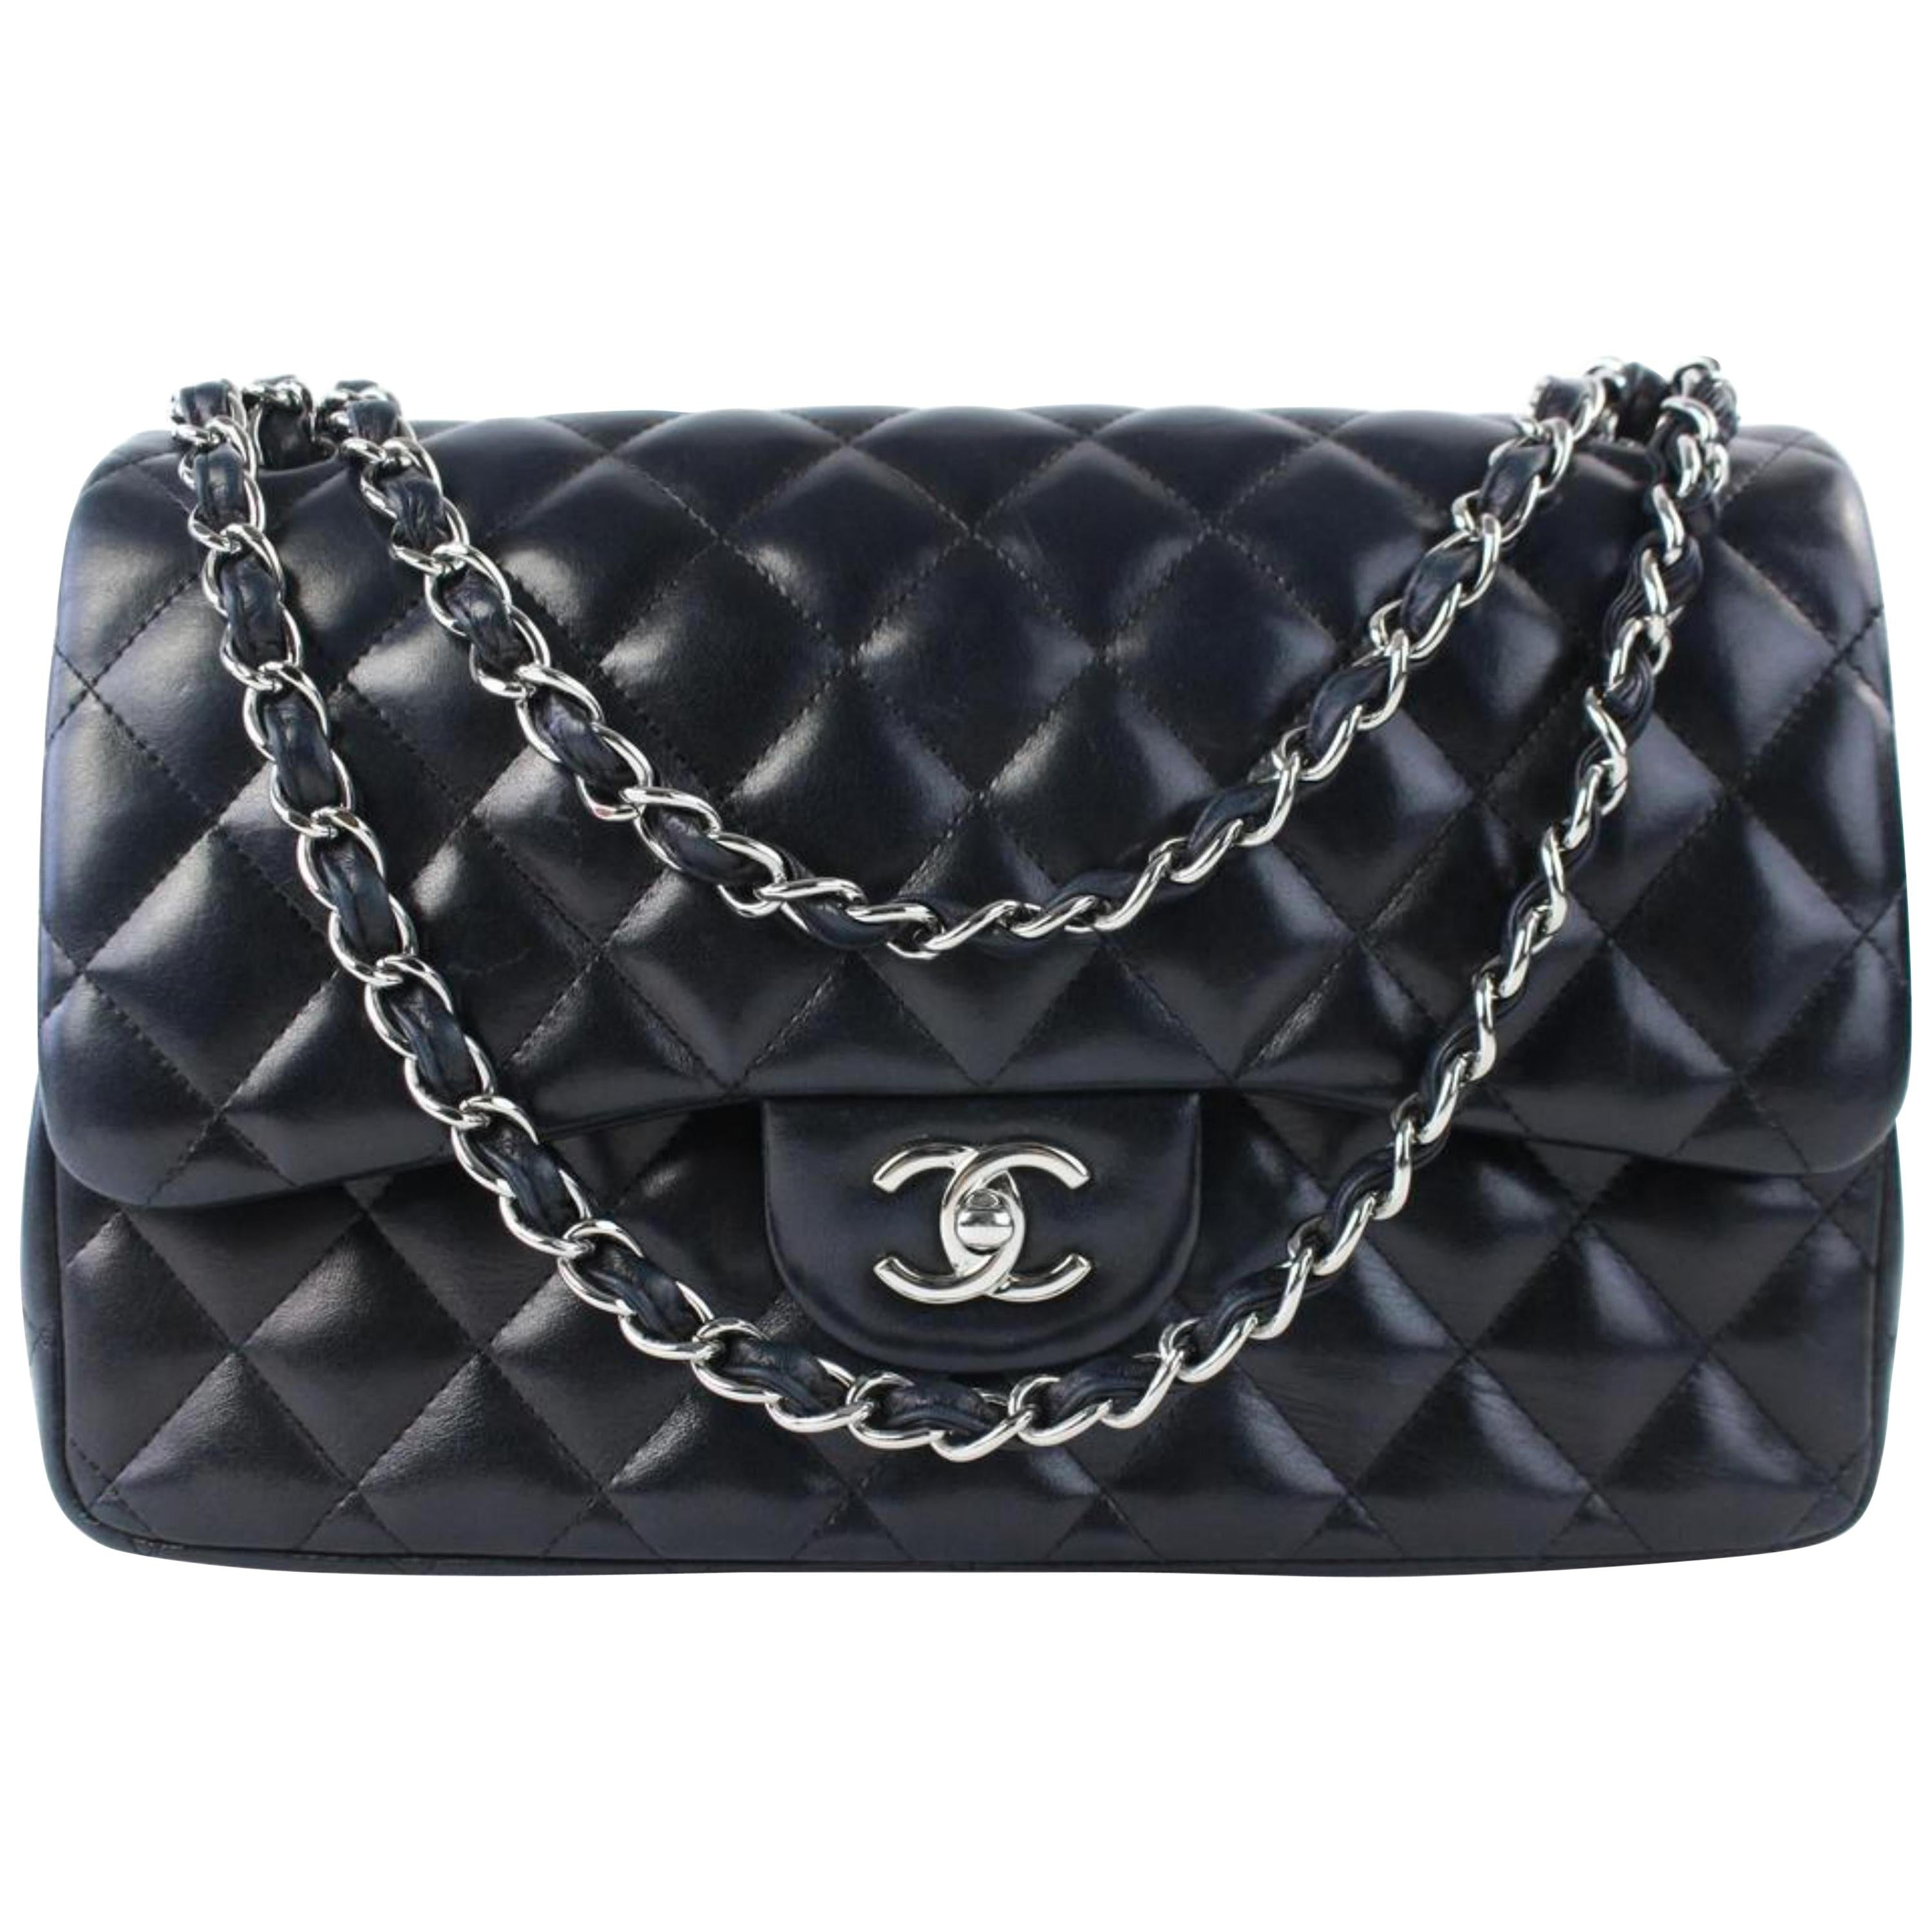 3f5d2c0e11ac23 Vintage Chanel Crossbody Bags and Messenger Bags - 640 For Sale at 1stdibs  - Page 2